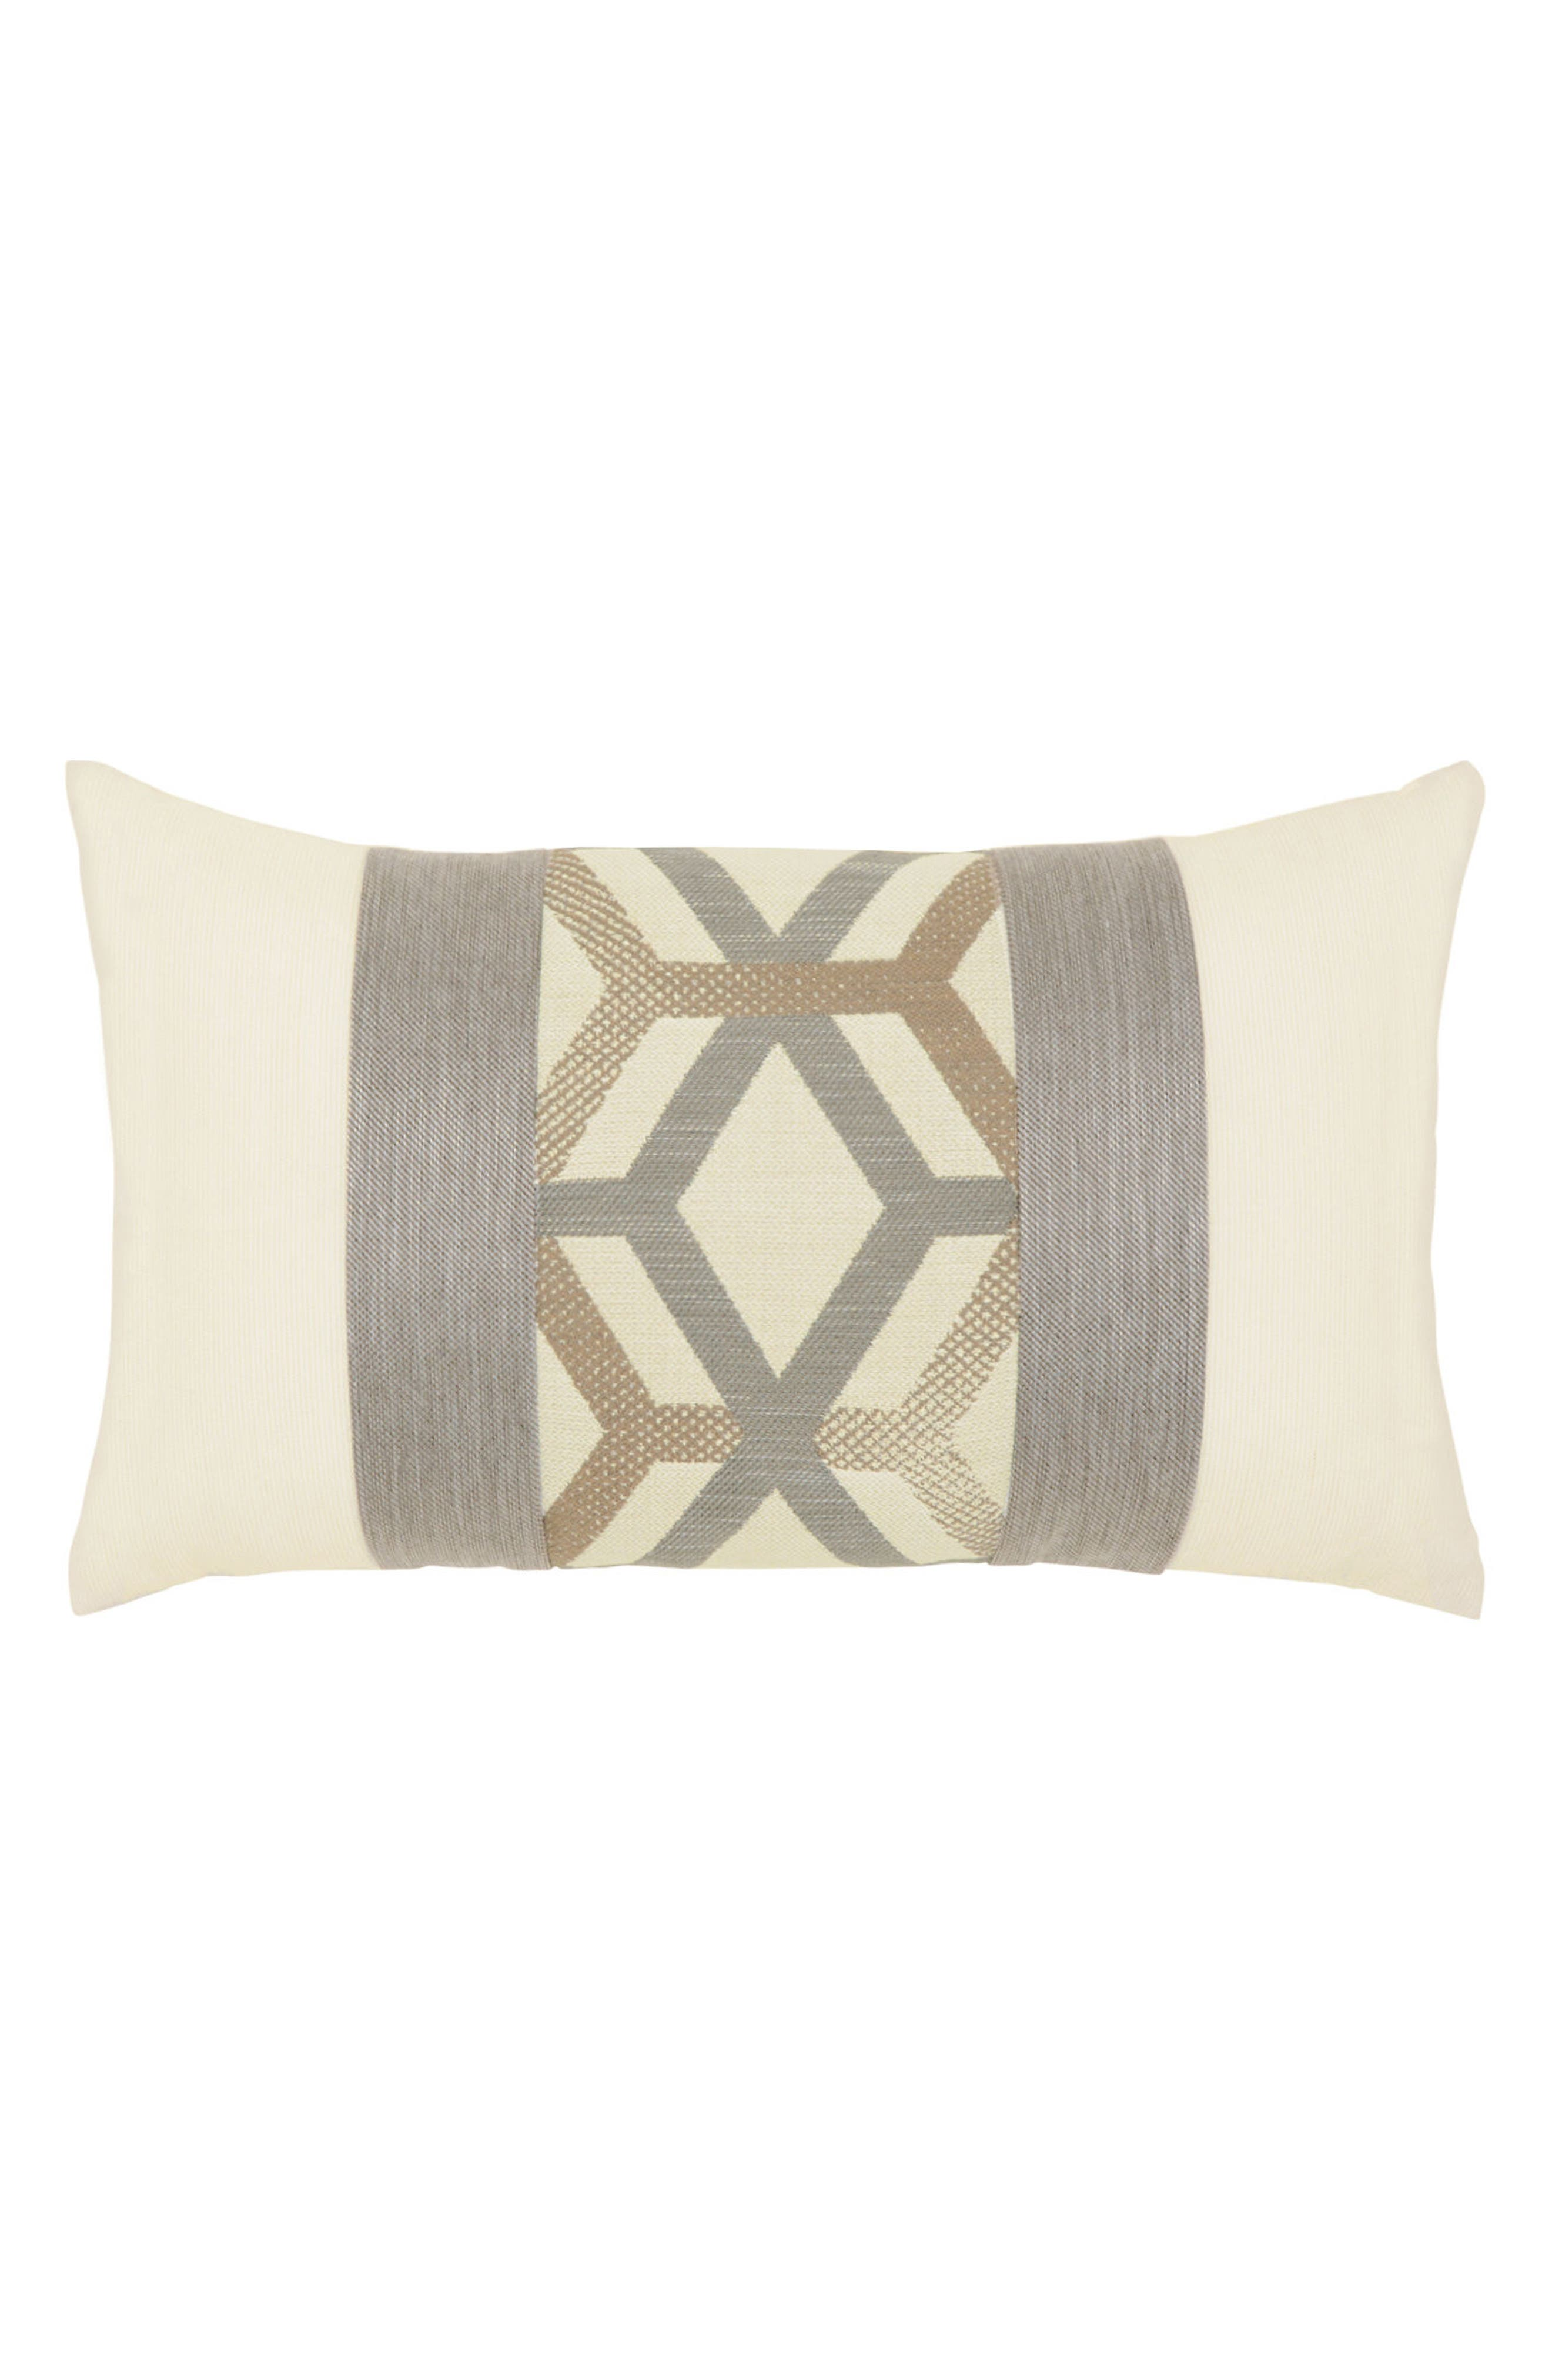 Lustrous Lines Lumbar Pillow,                         Main,                         color, Ivory/ Grey